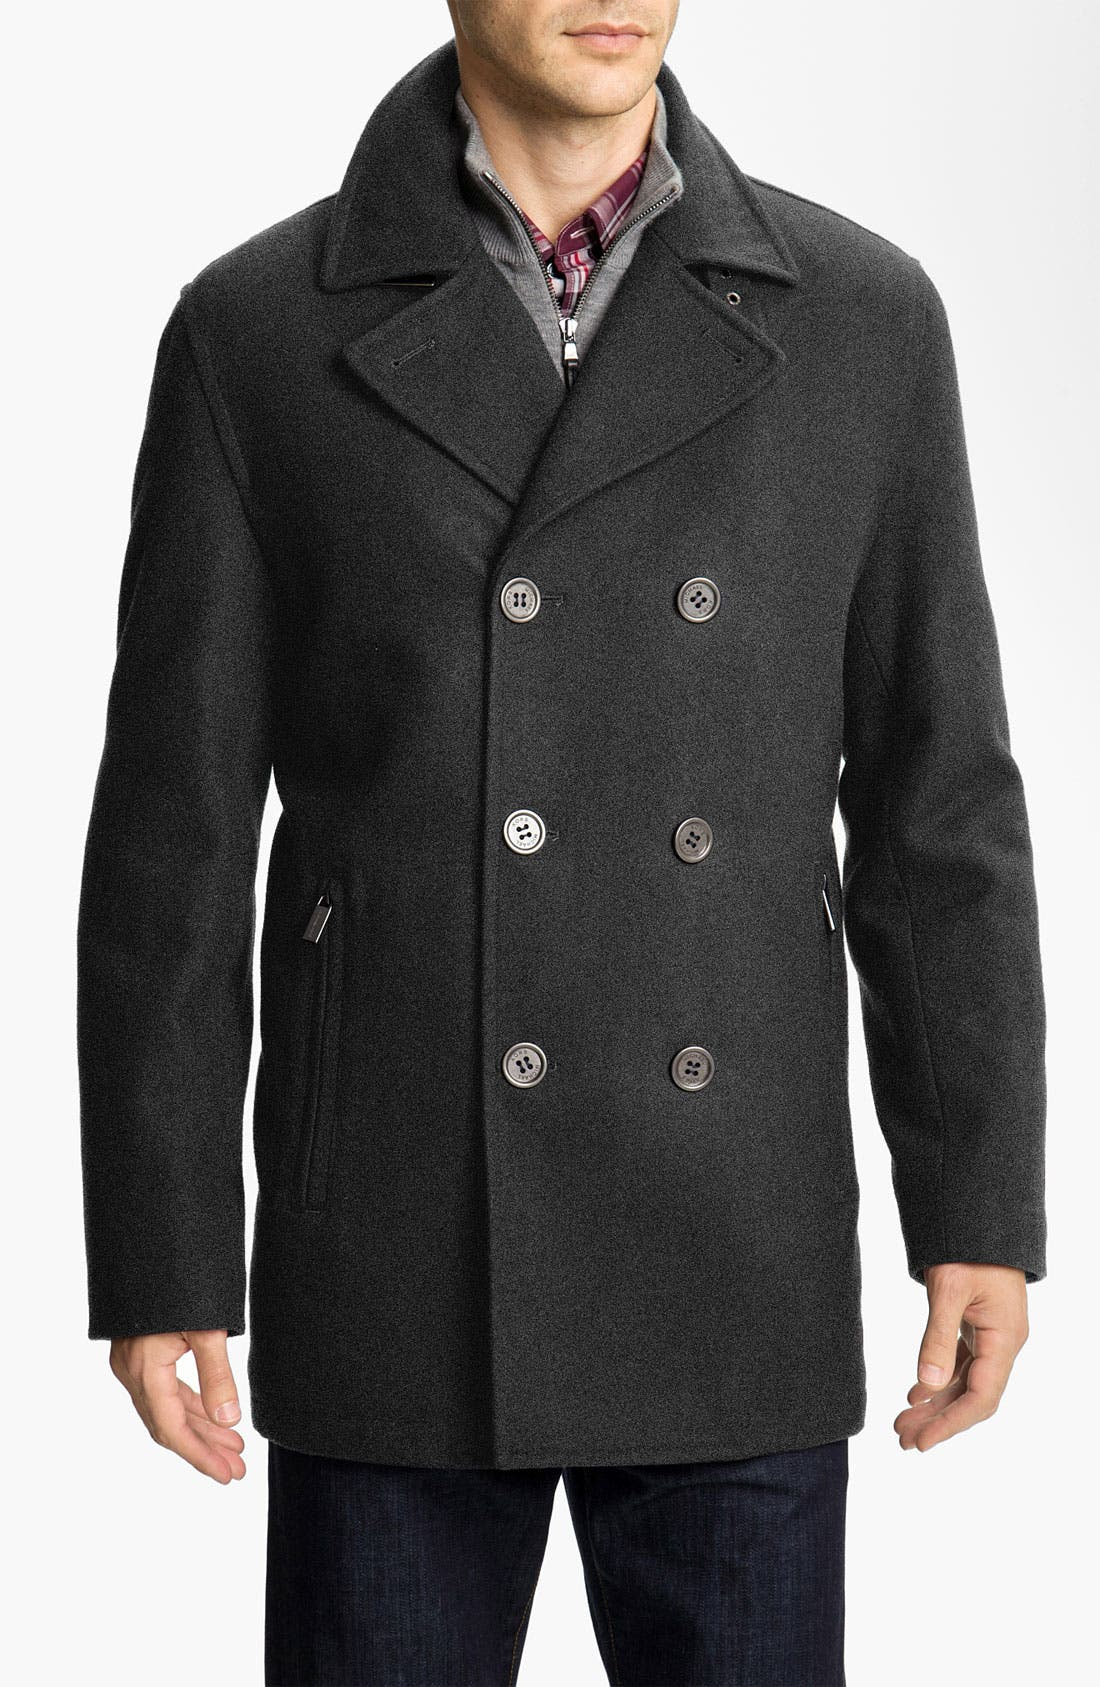 Main Image - Michael Kors 'San Diego' Wool Blend Peacoat (Online Exclusive)